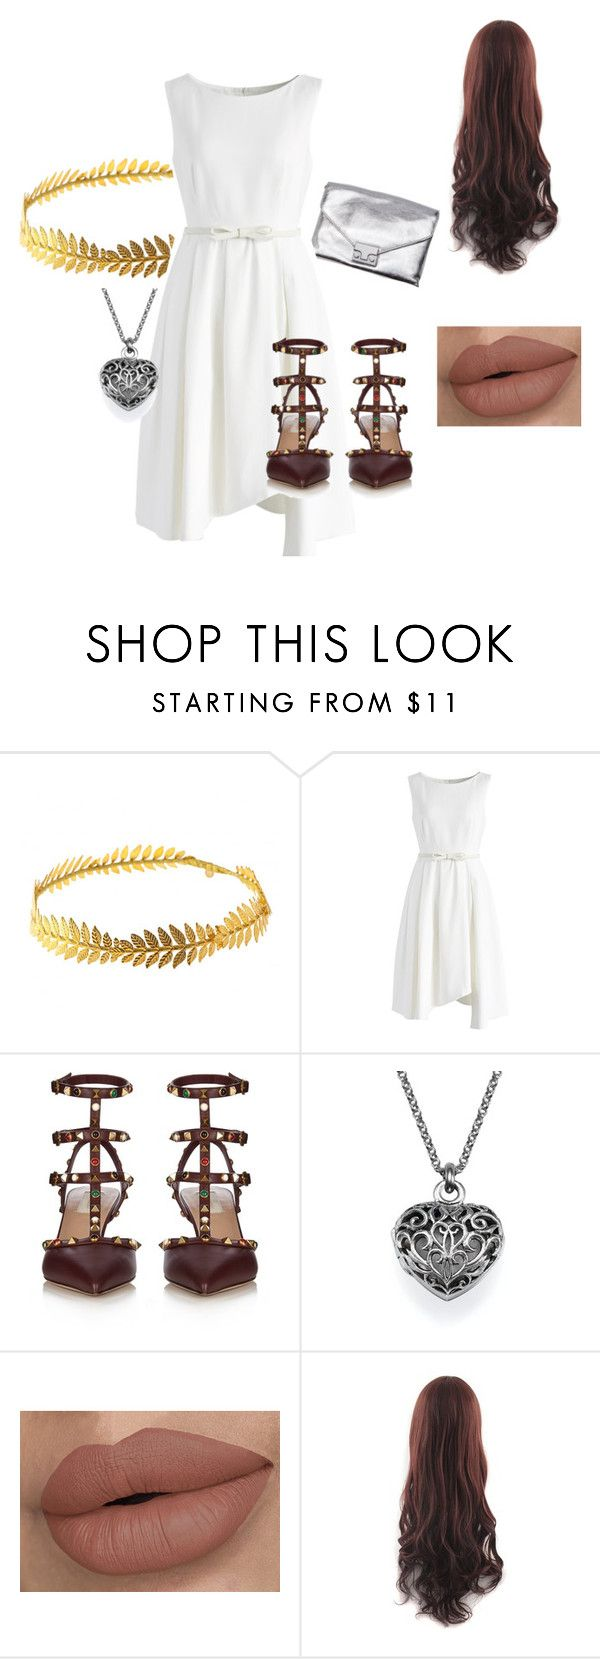 """Muse"" by charlottealison ❤ liked on Polyvore featuring Johnny Loves Rosie, Loeffler Randall, Chicwish and Valentino"